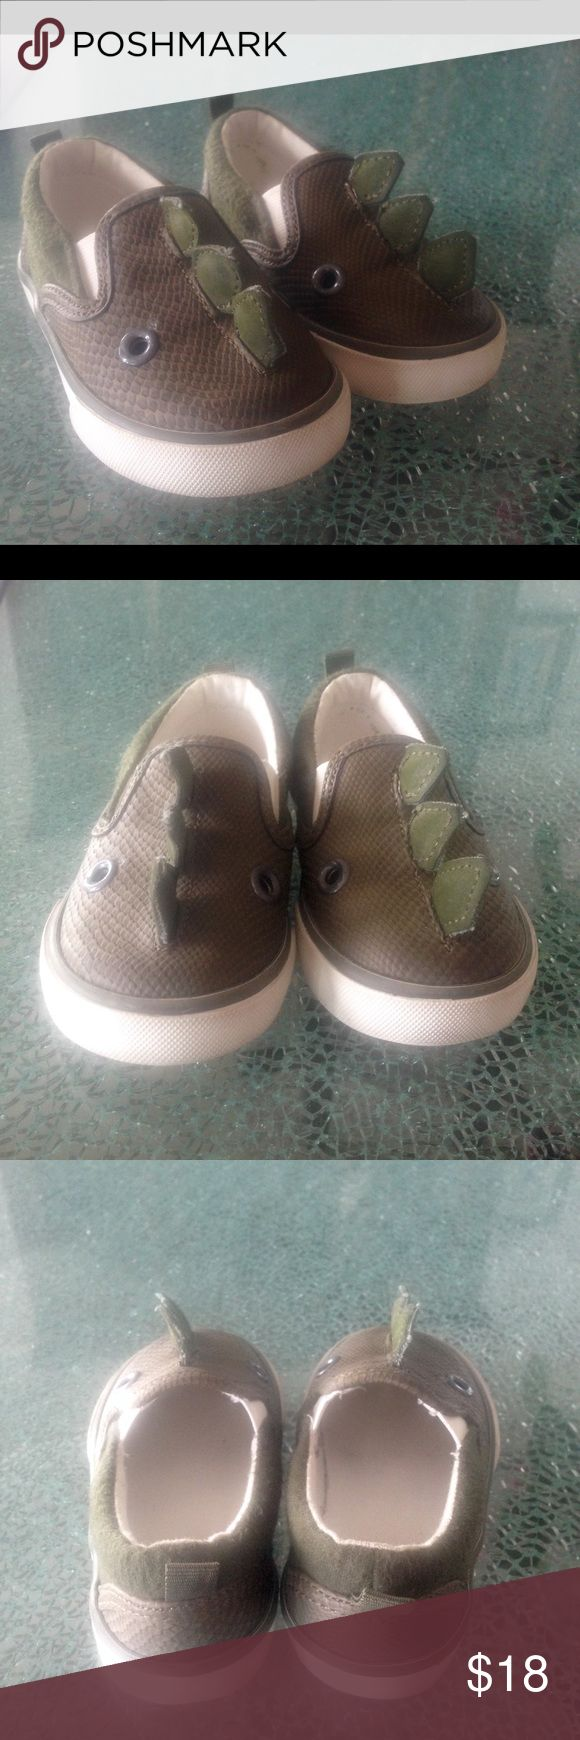 Adorable GAP Dino shoes Only worn one time for an event, in like new condition.  Toddler size 6. GAP Shoes Sneakers